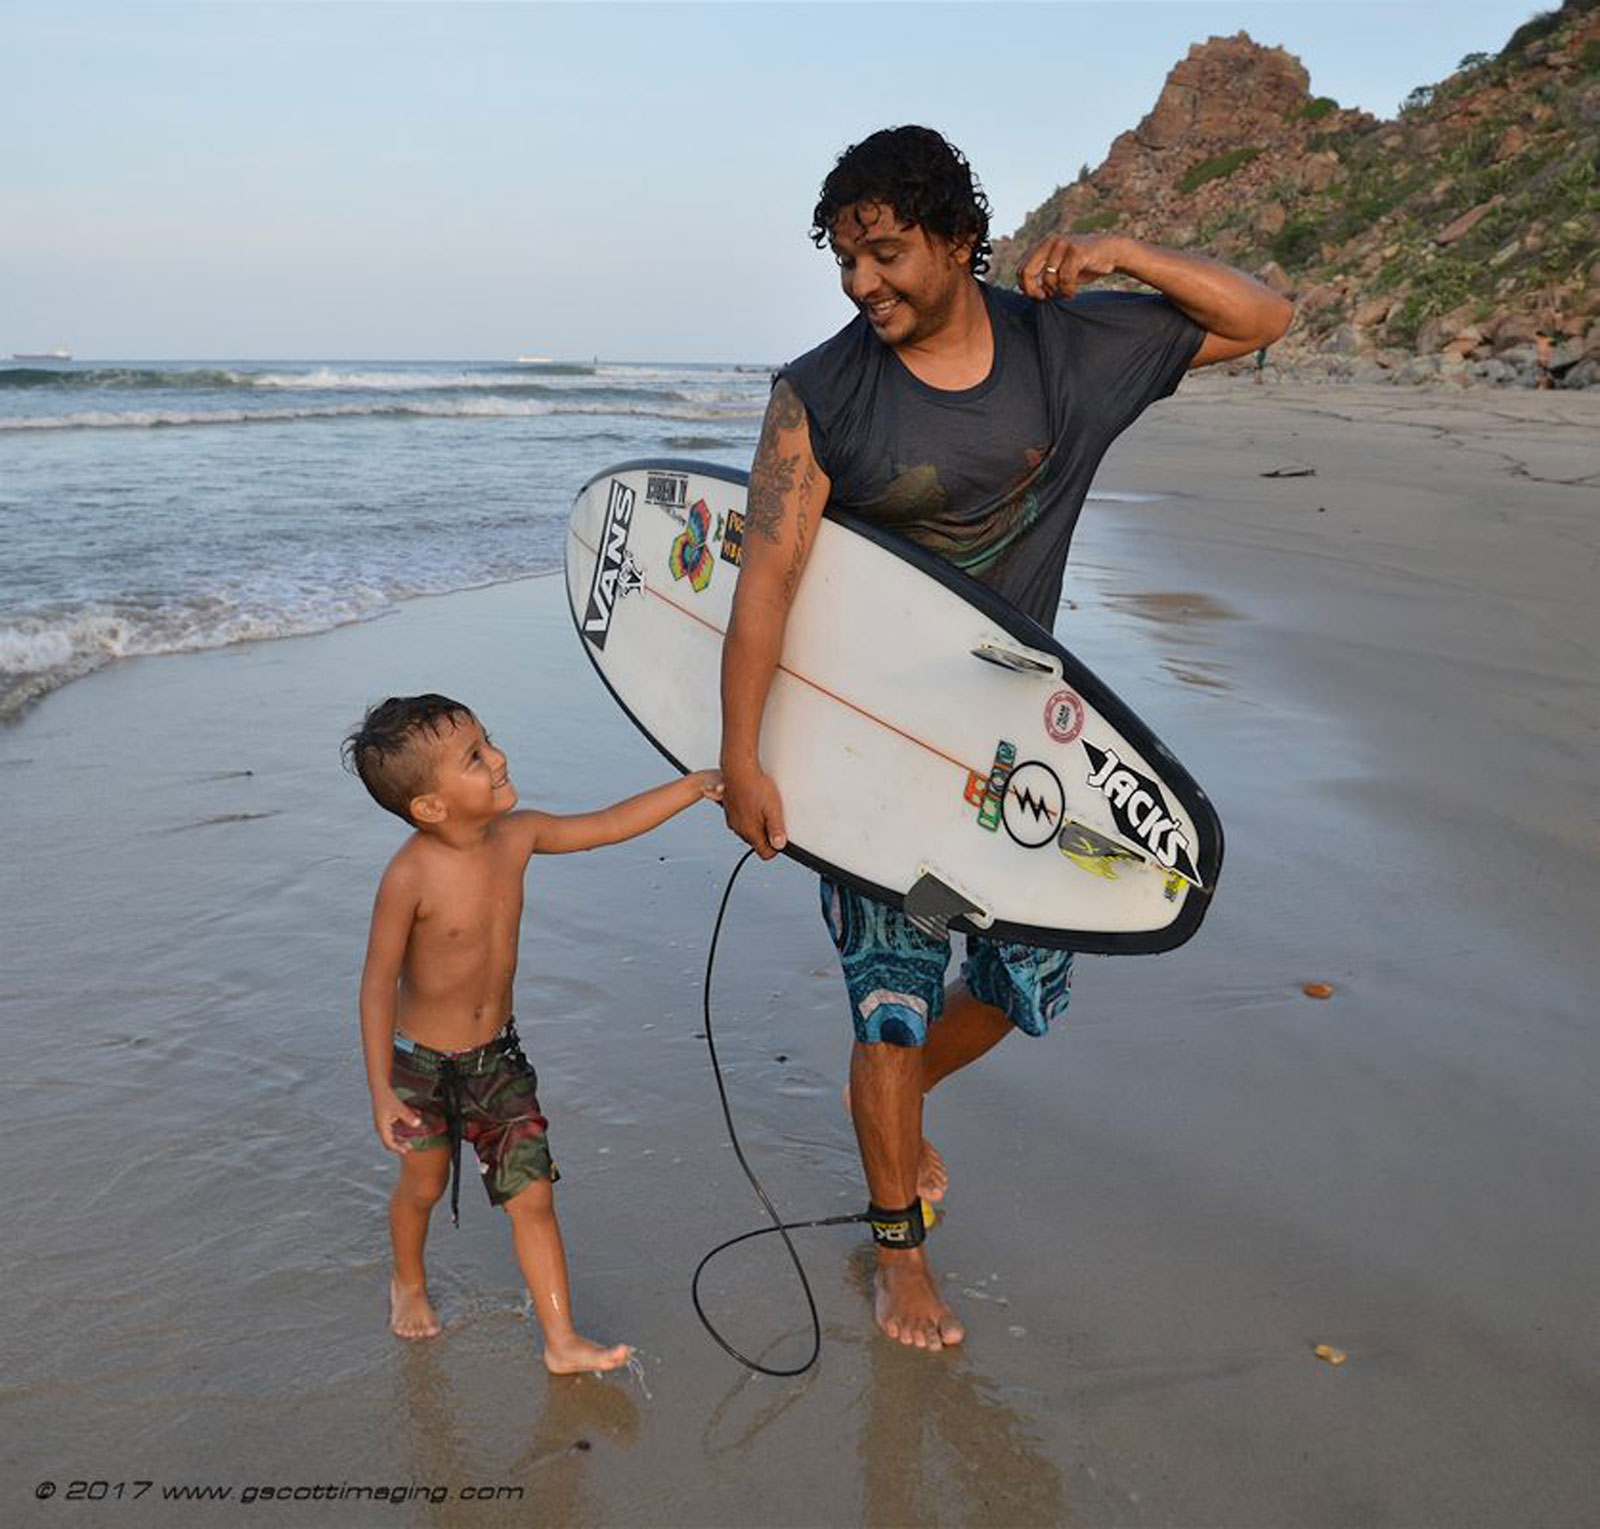 David Ramirez | Las Palmeras Surf Camp, Salina Cruz, Oaxaca, Mexico